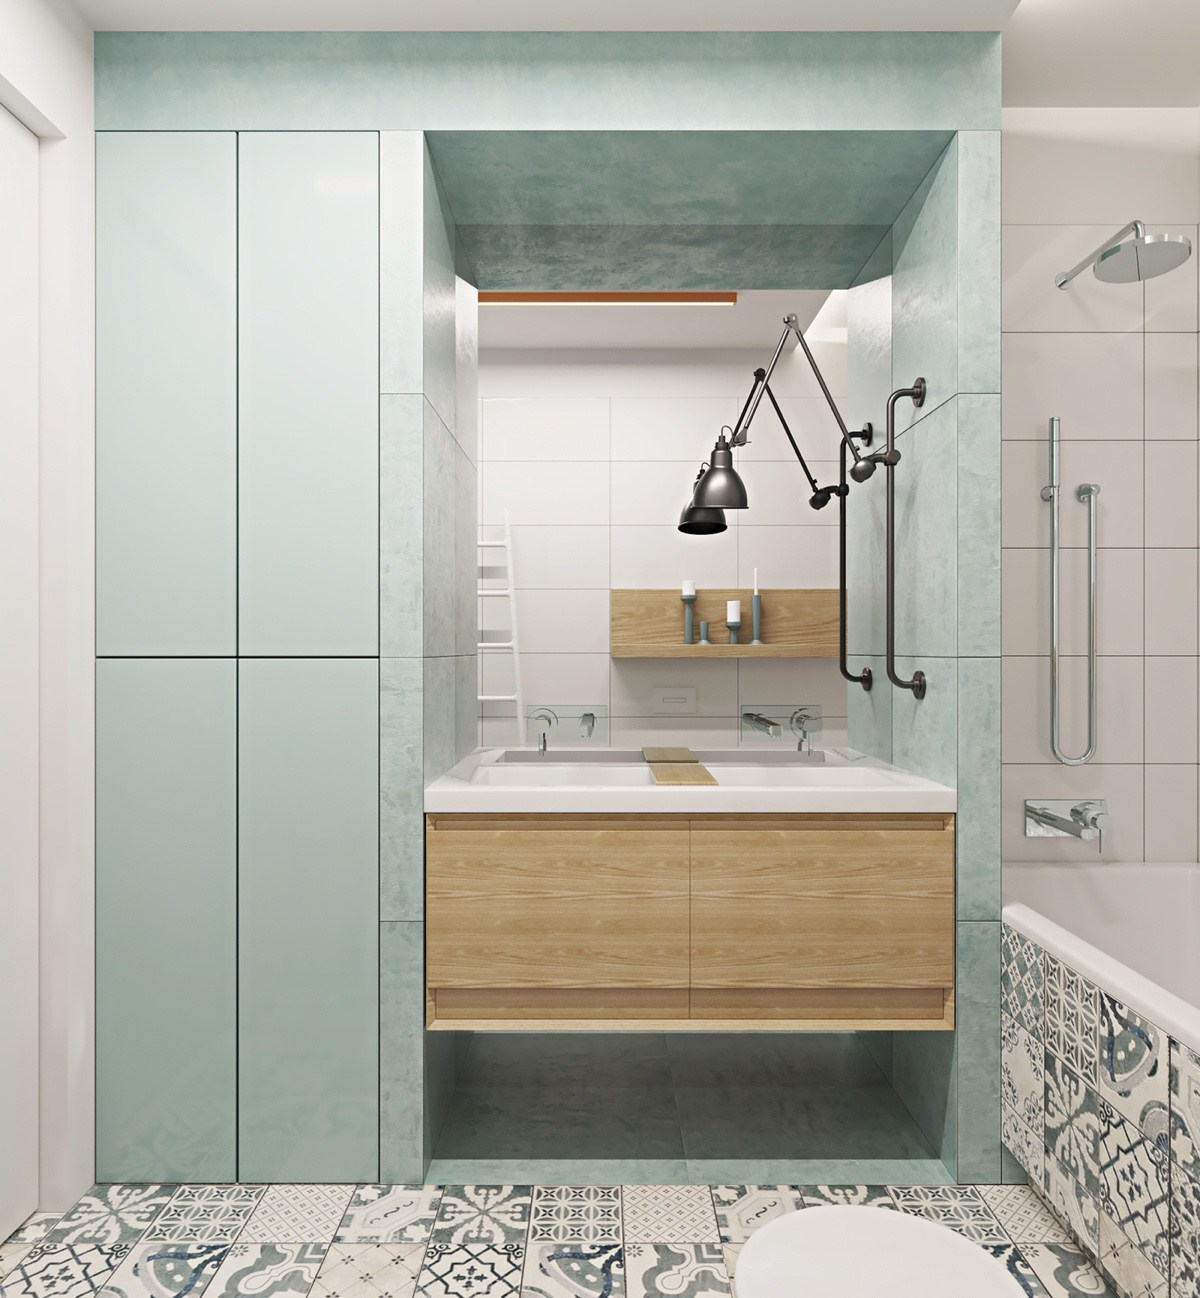 Teal Feature Wall Bathroom Central Wooden Sink Cabinet - Two muted tone exposed brick pads for young families